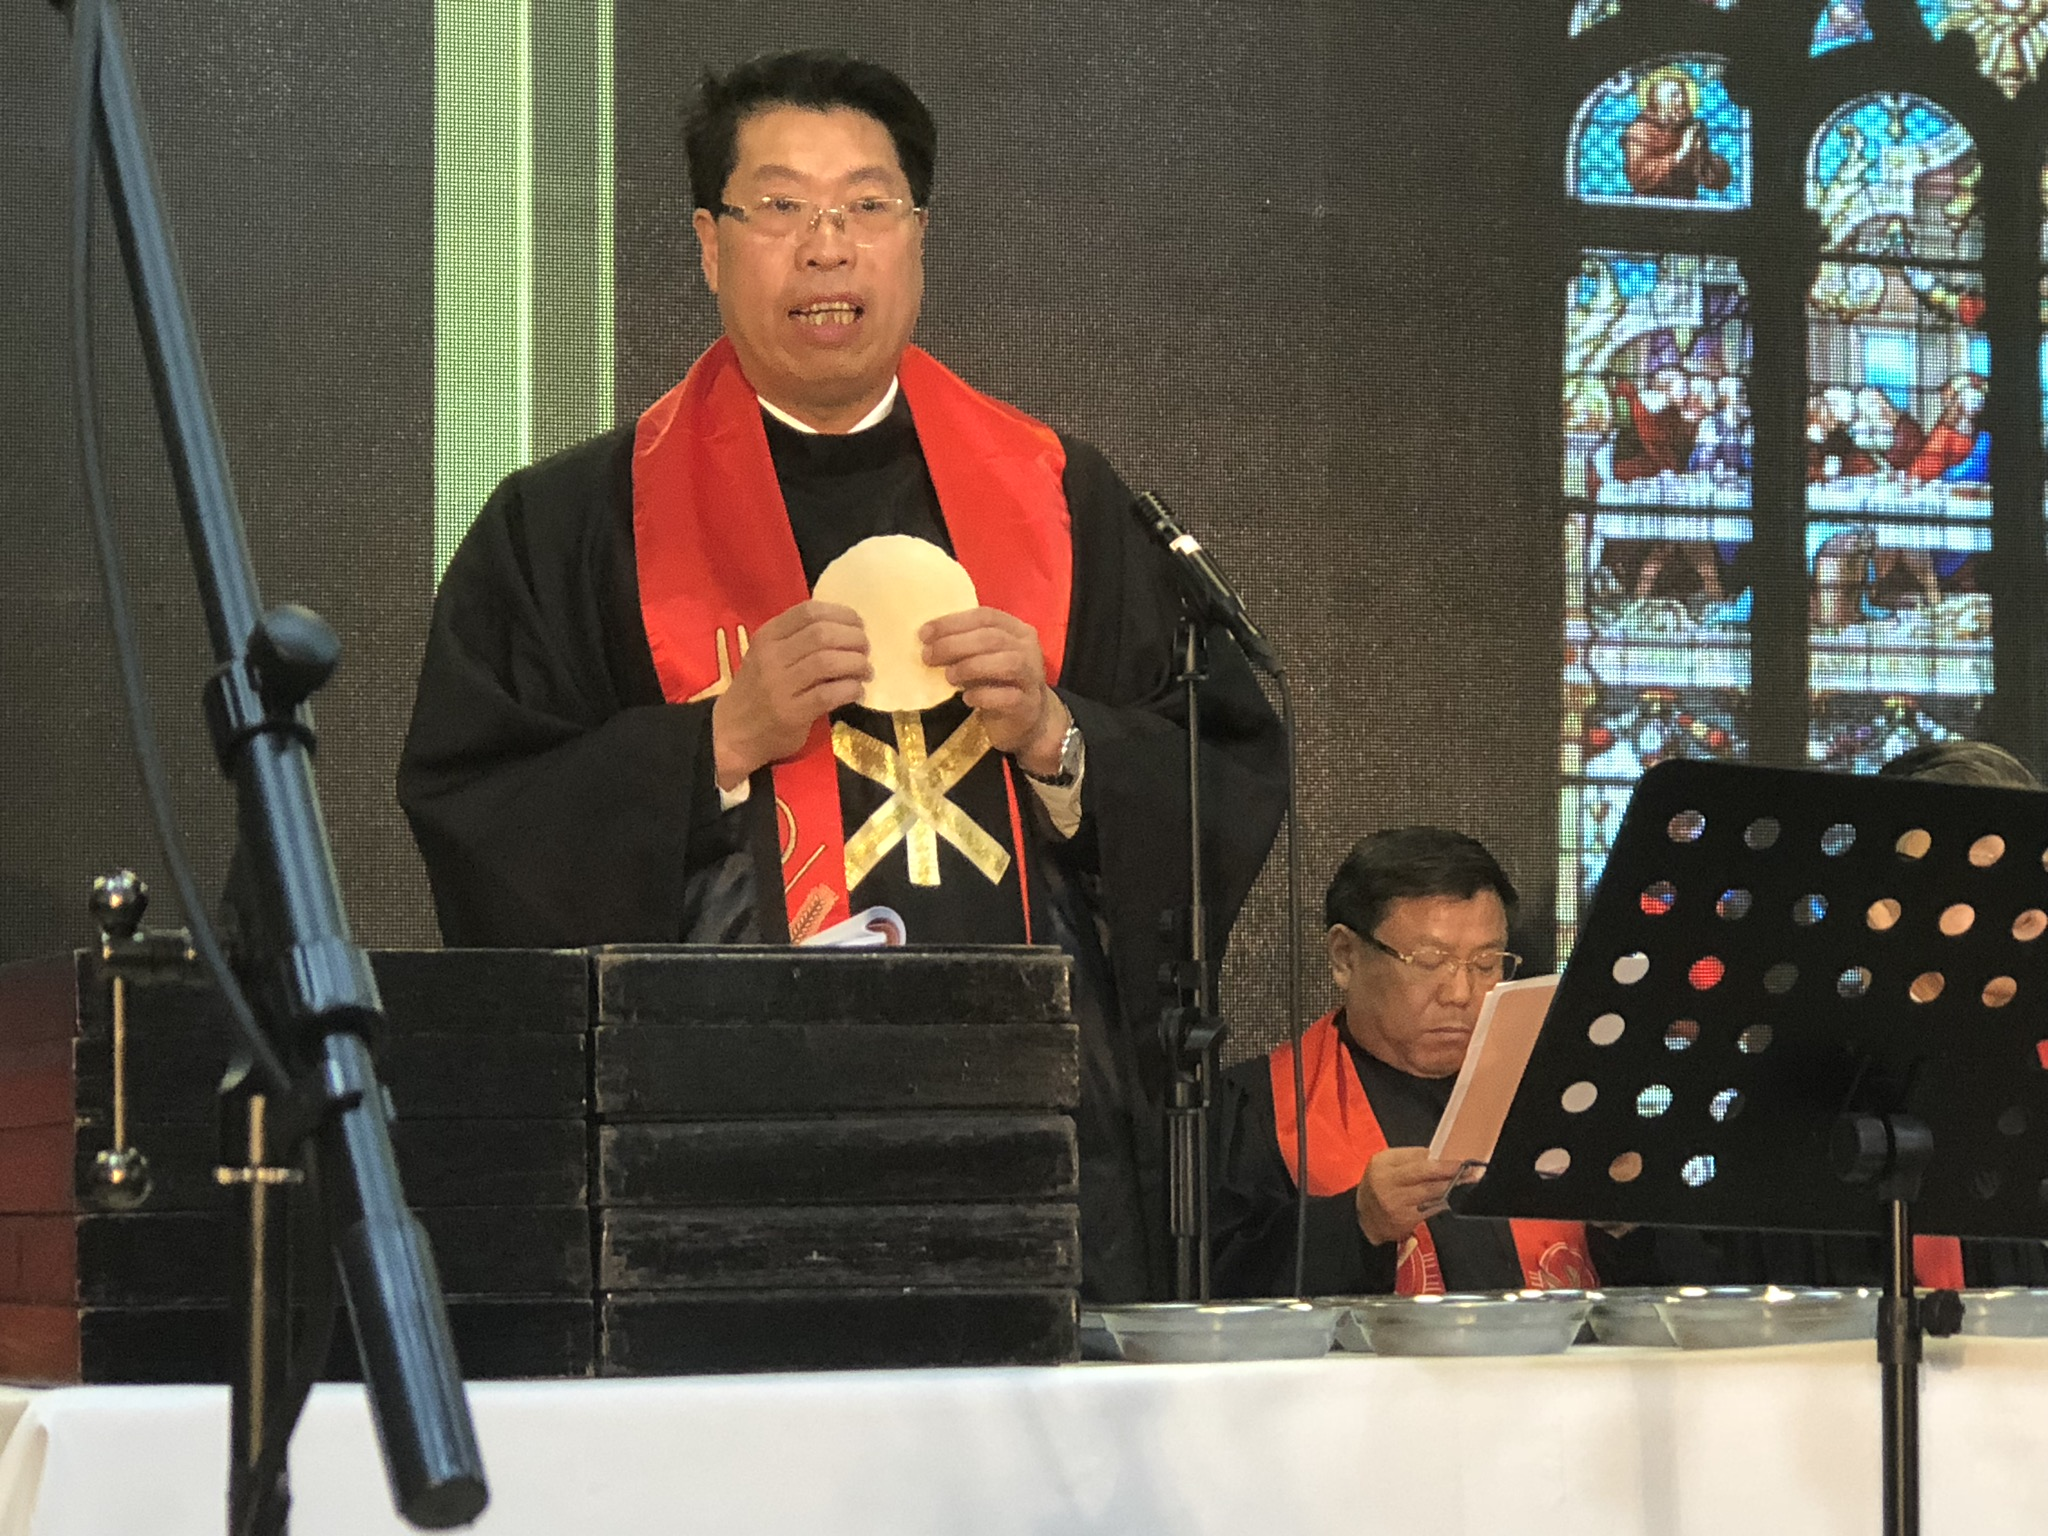 Rev. Zhang, Provincial Chairman, officiating over communion